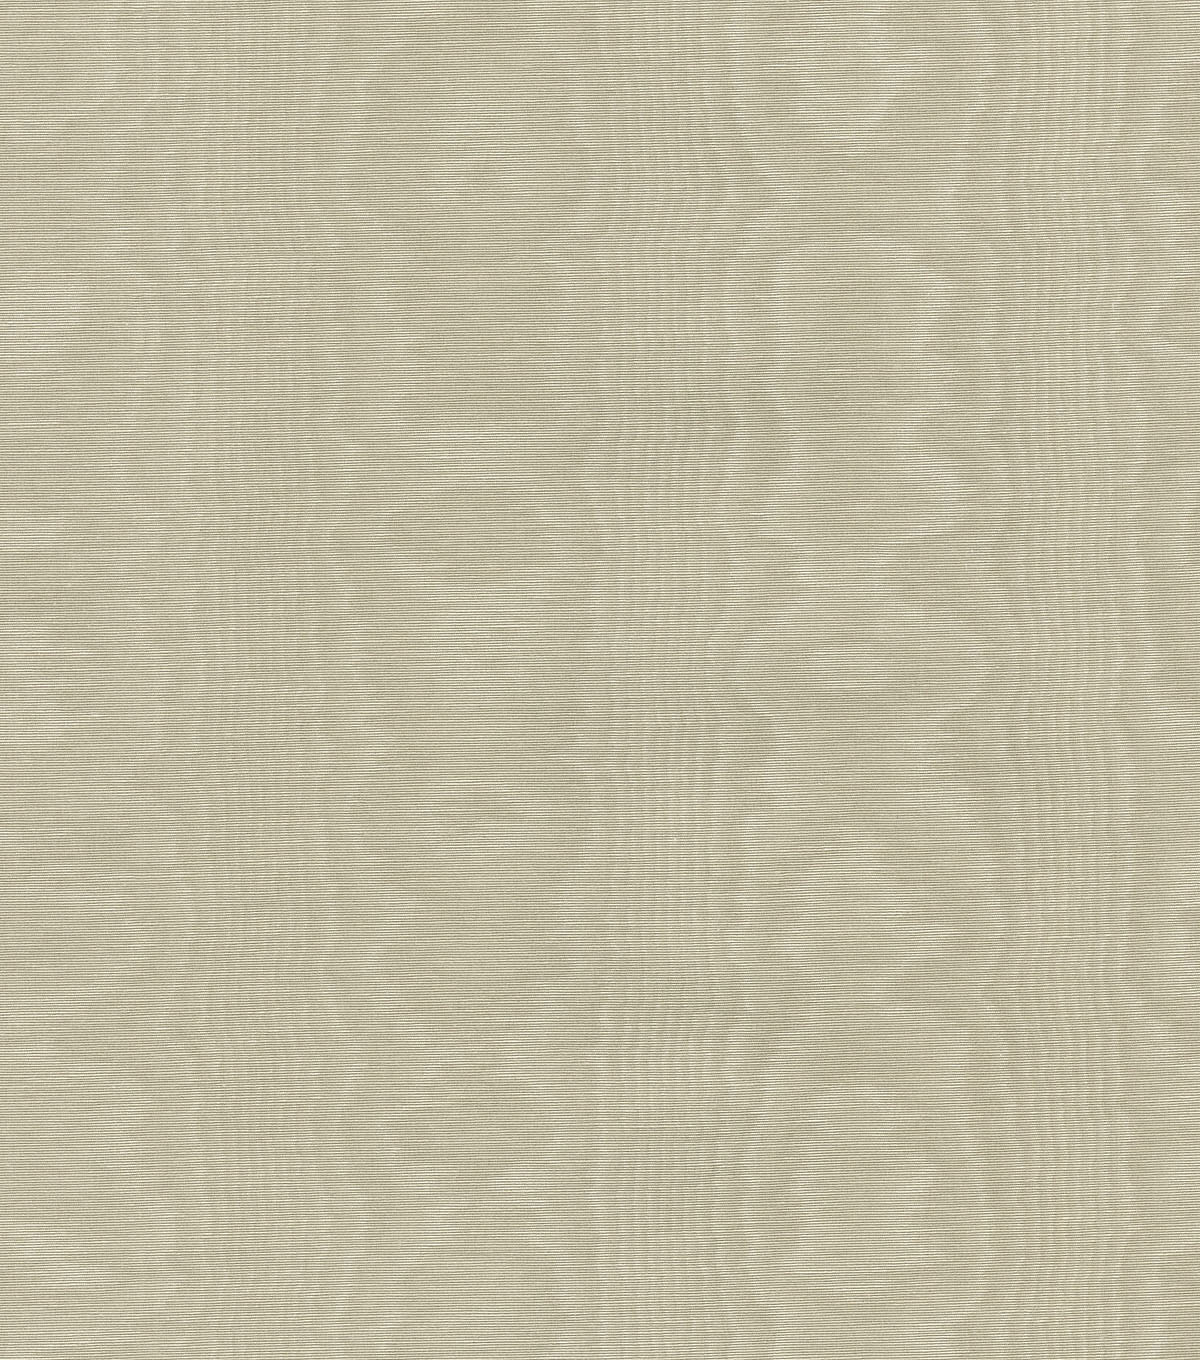 Williamsburg Solid Fabric Swatch-Palace Moire/Linen